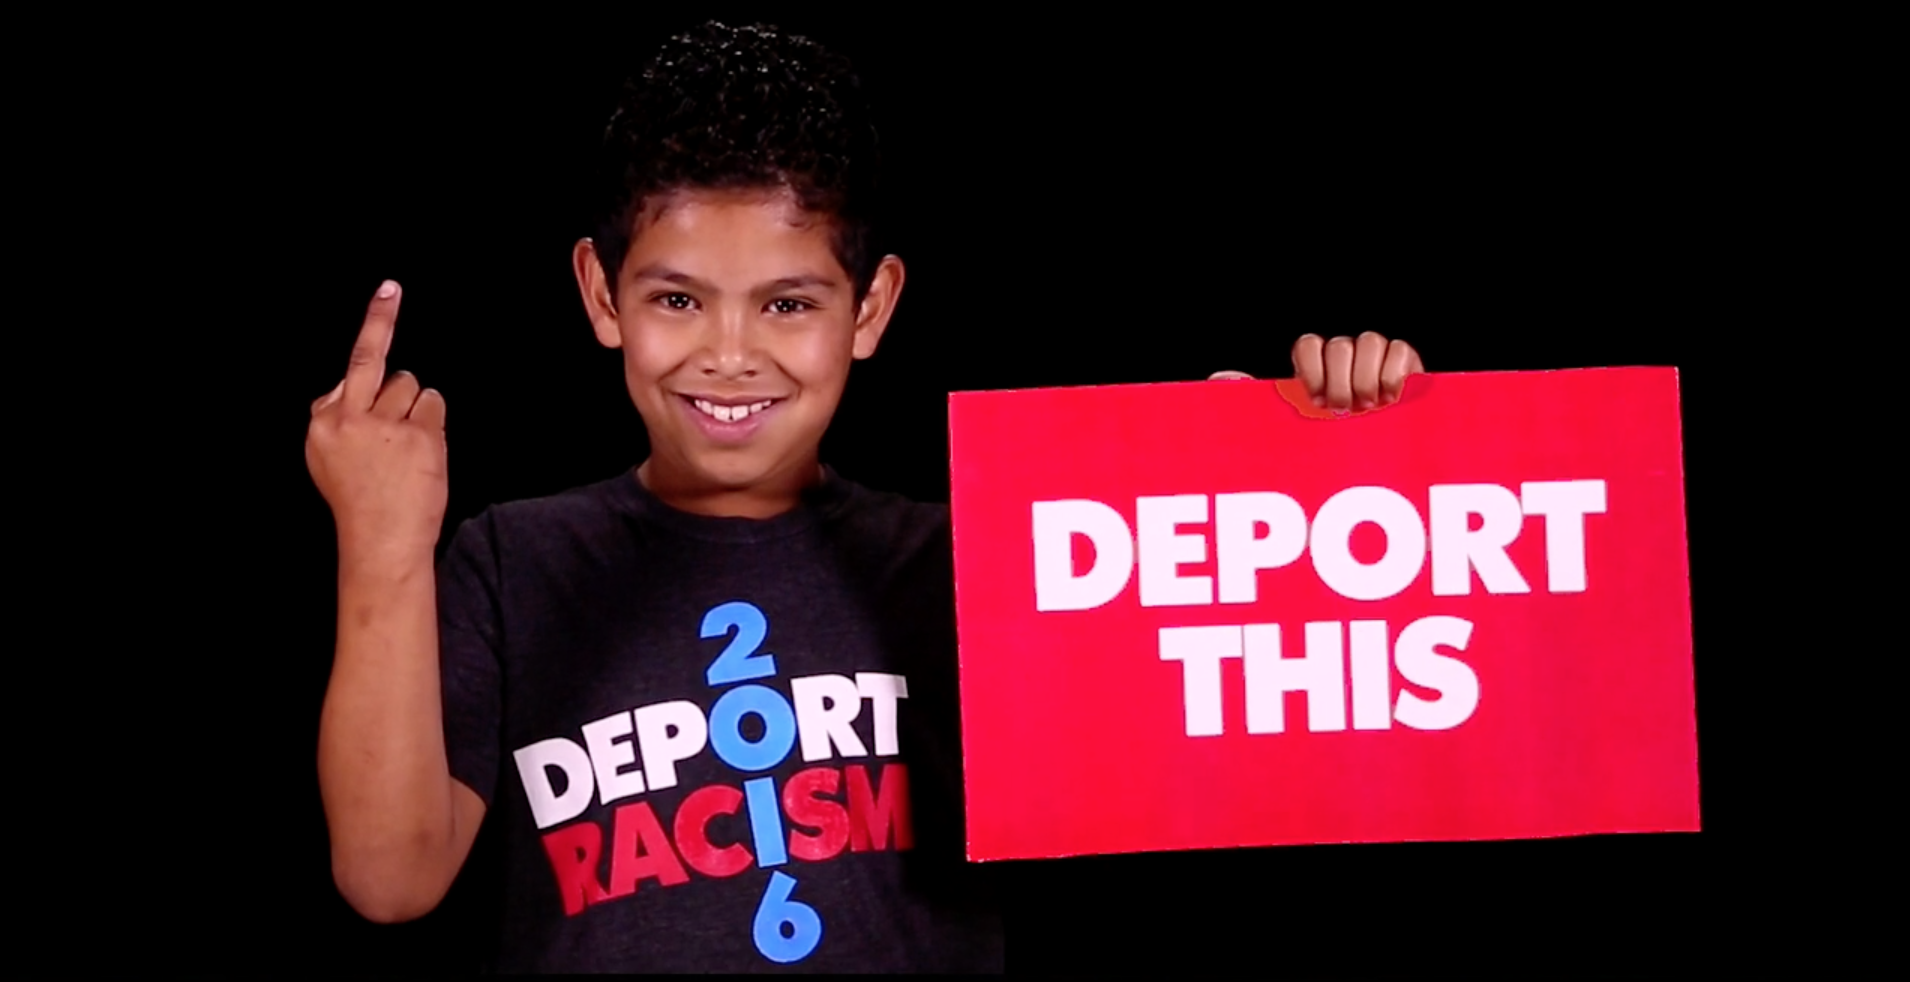 Watch Hysterical, Foul-Mouthed Little Kids Tell Donald Trump to STFU